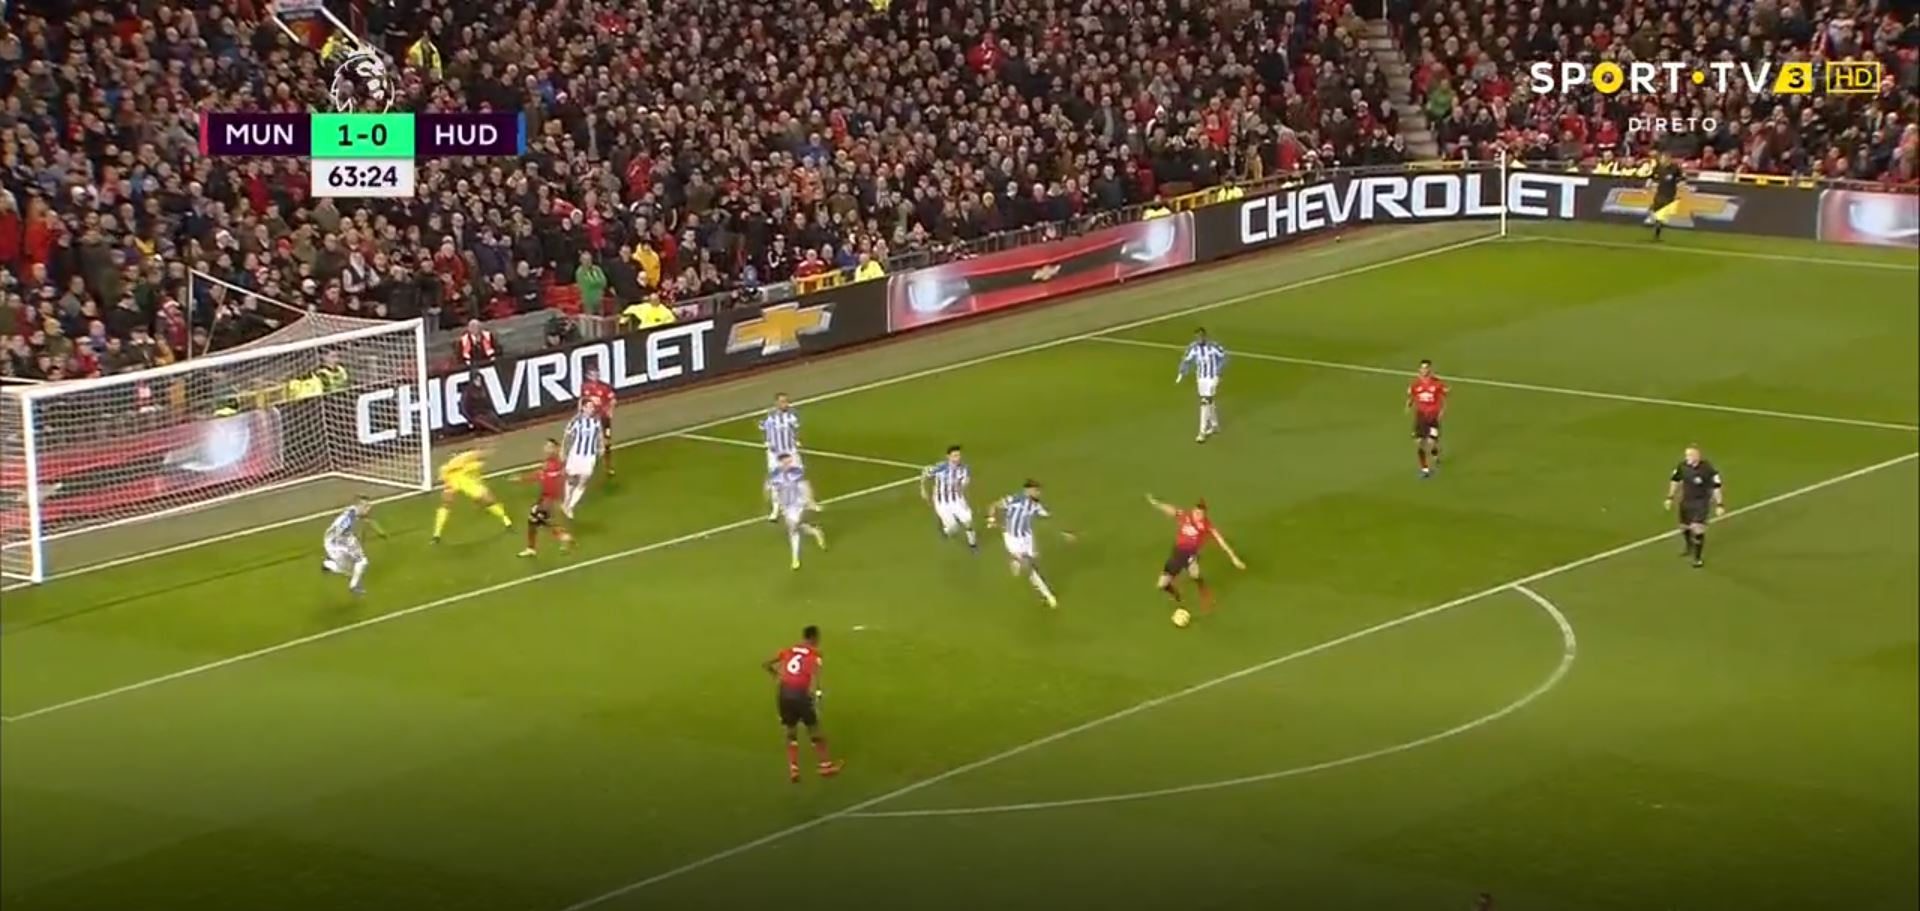 WATCH: Pogba Scores After Brilliant Team Play From United